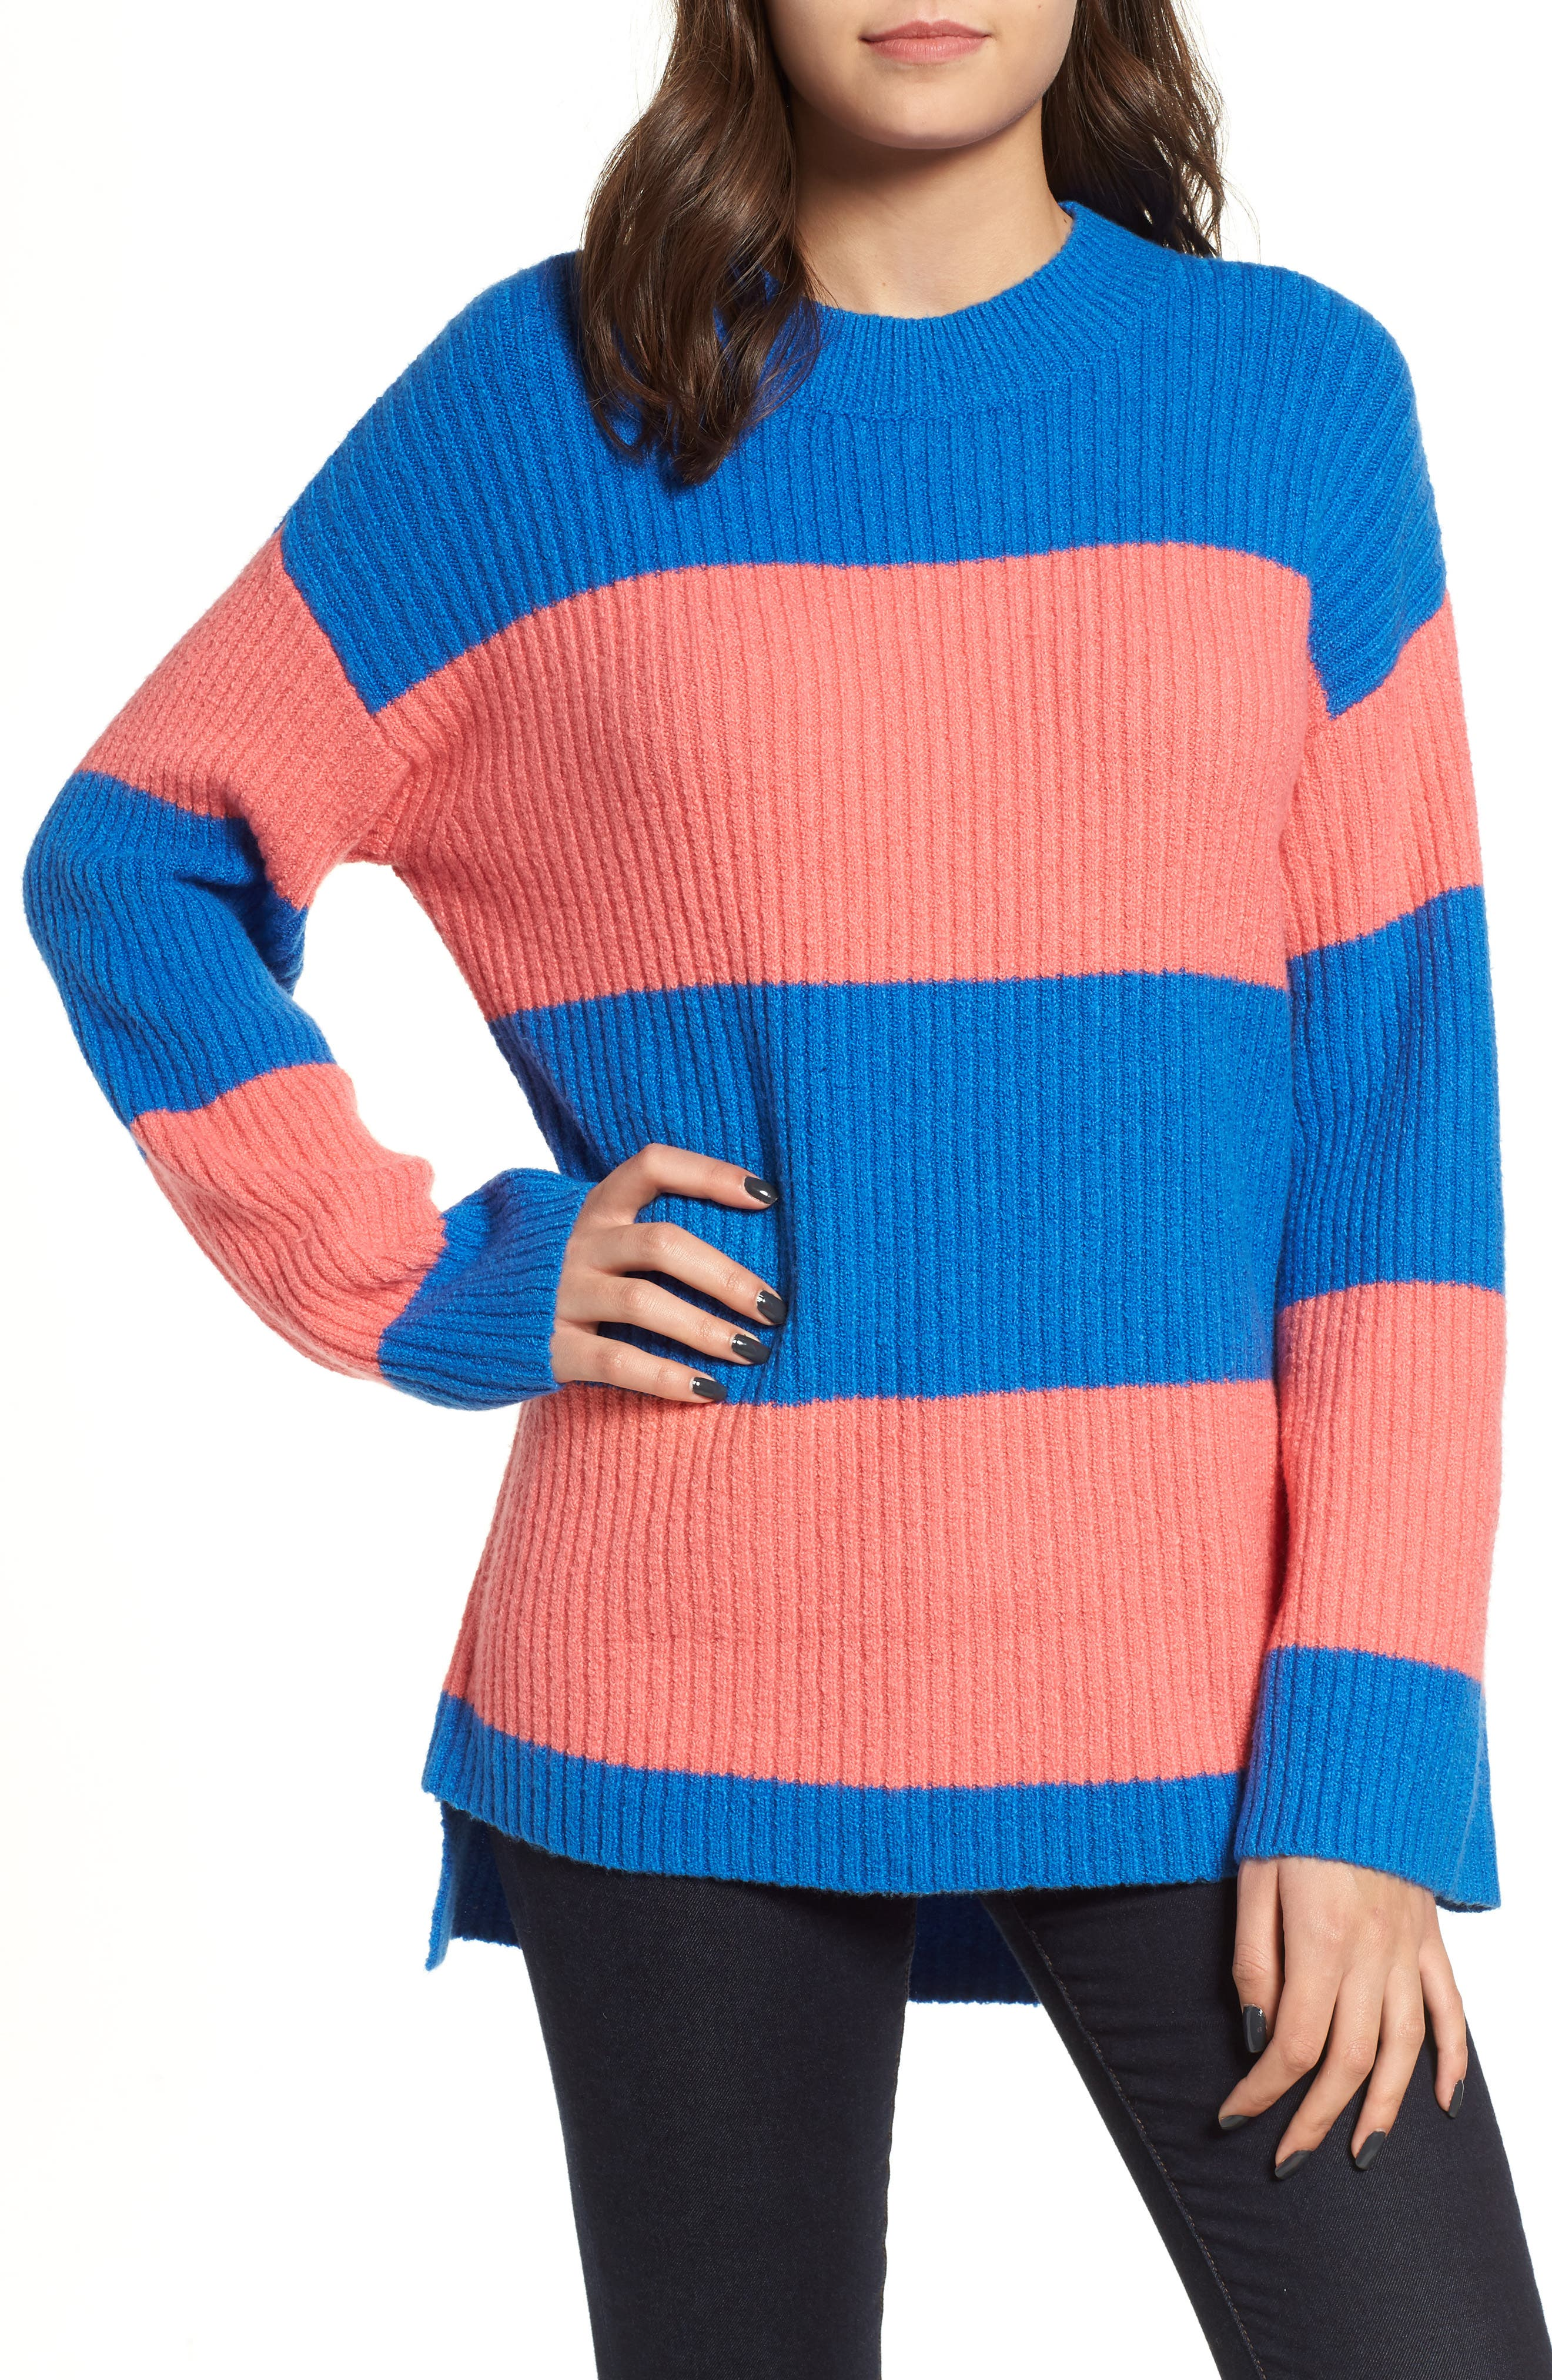 Rugby Stripe Sweater,                             Main thumbnail 1, color,                             BLUE BOAT COURTNEY STRIPE